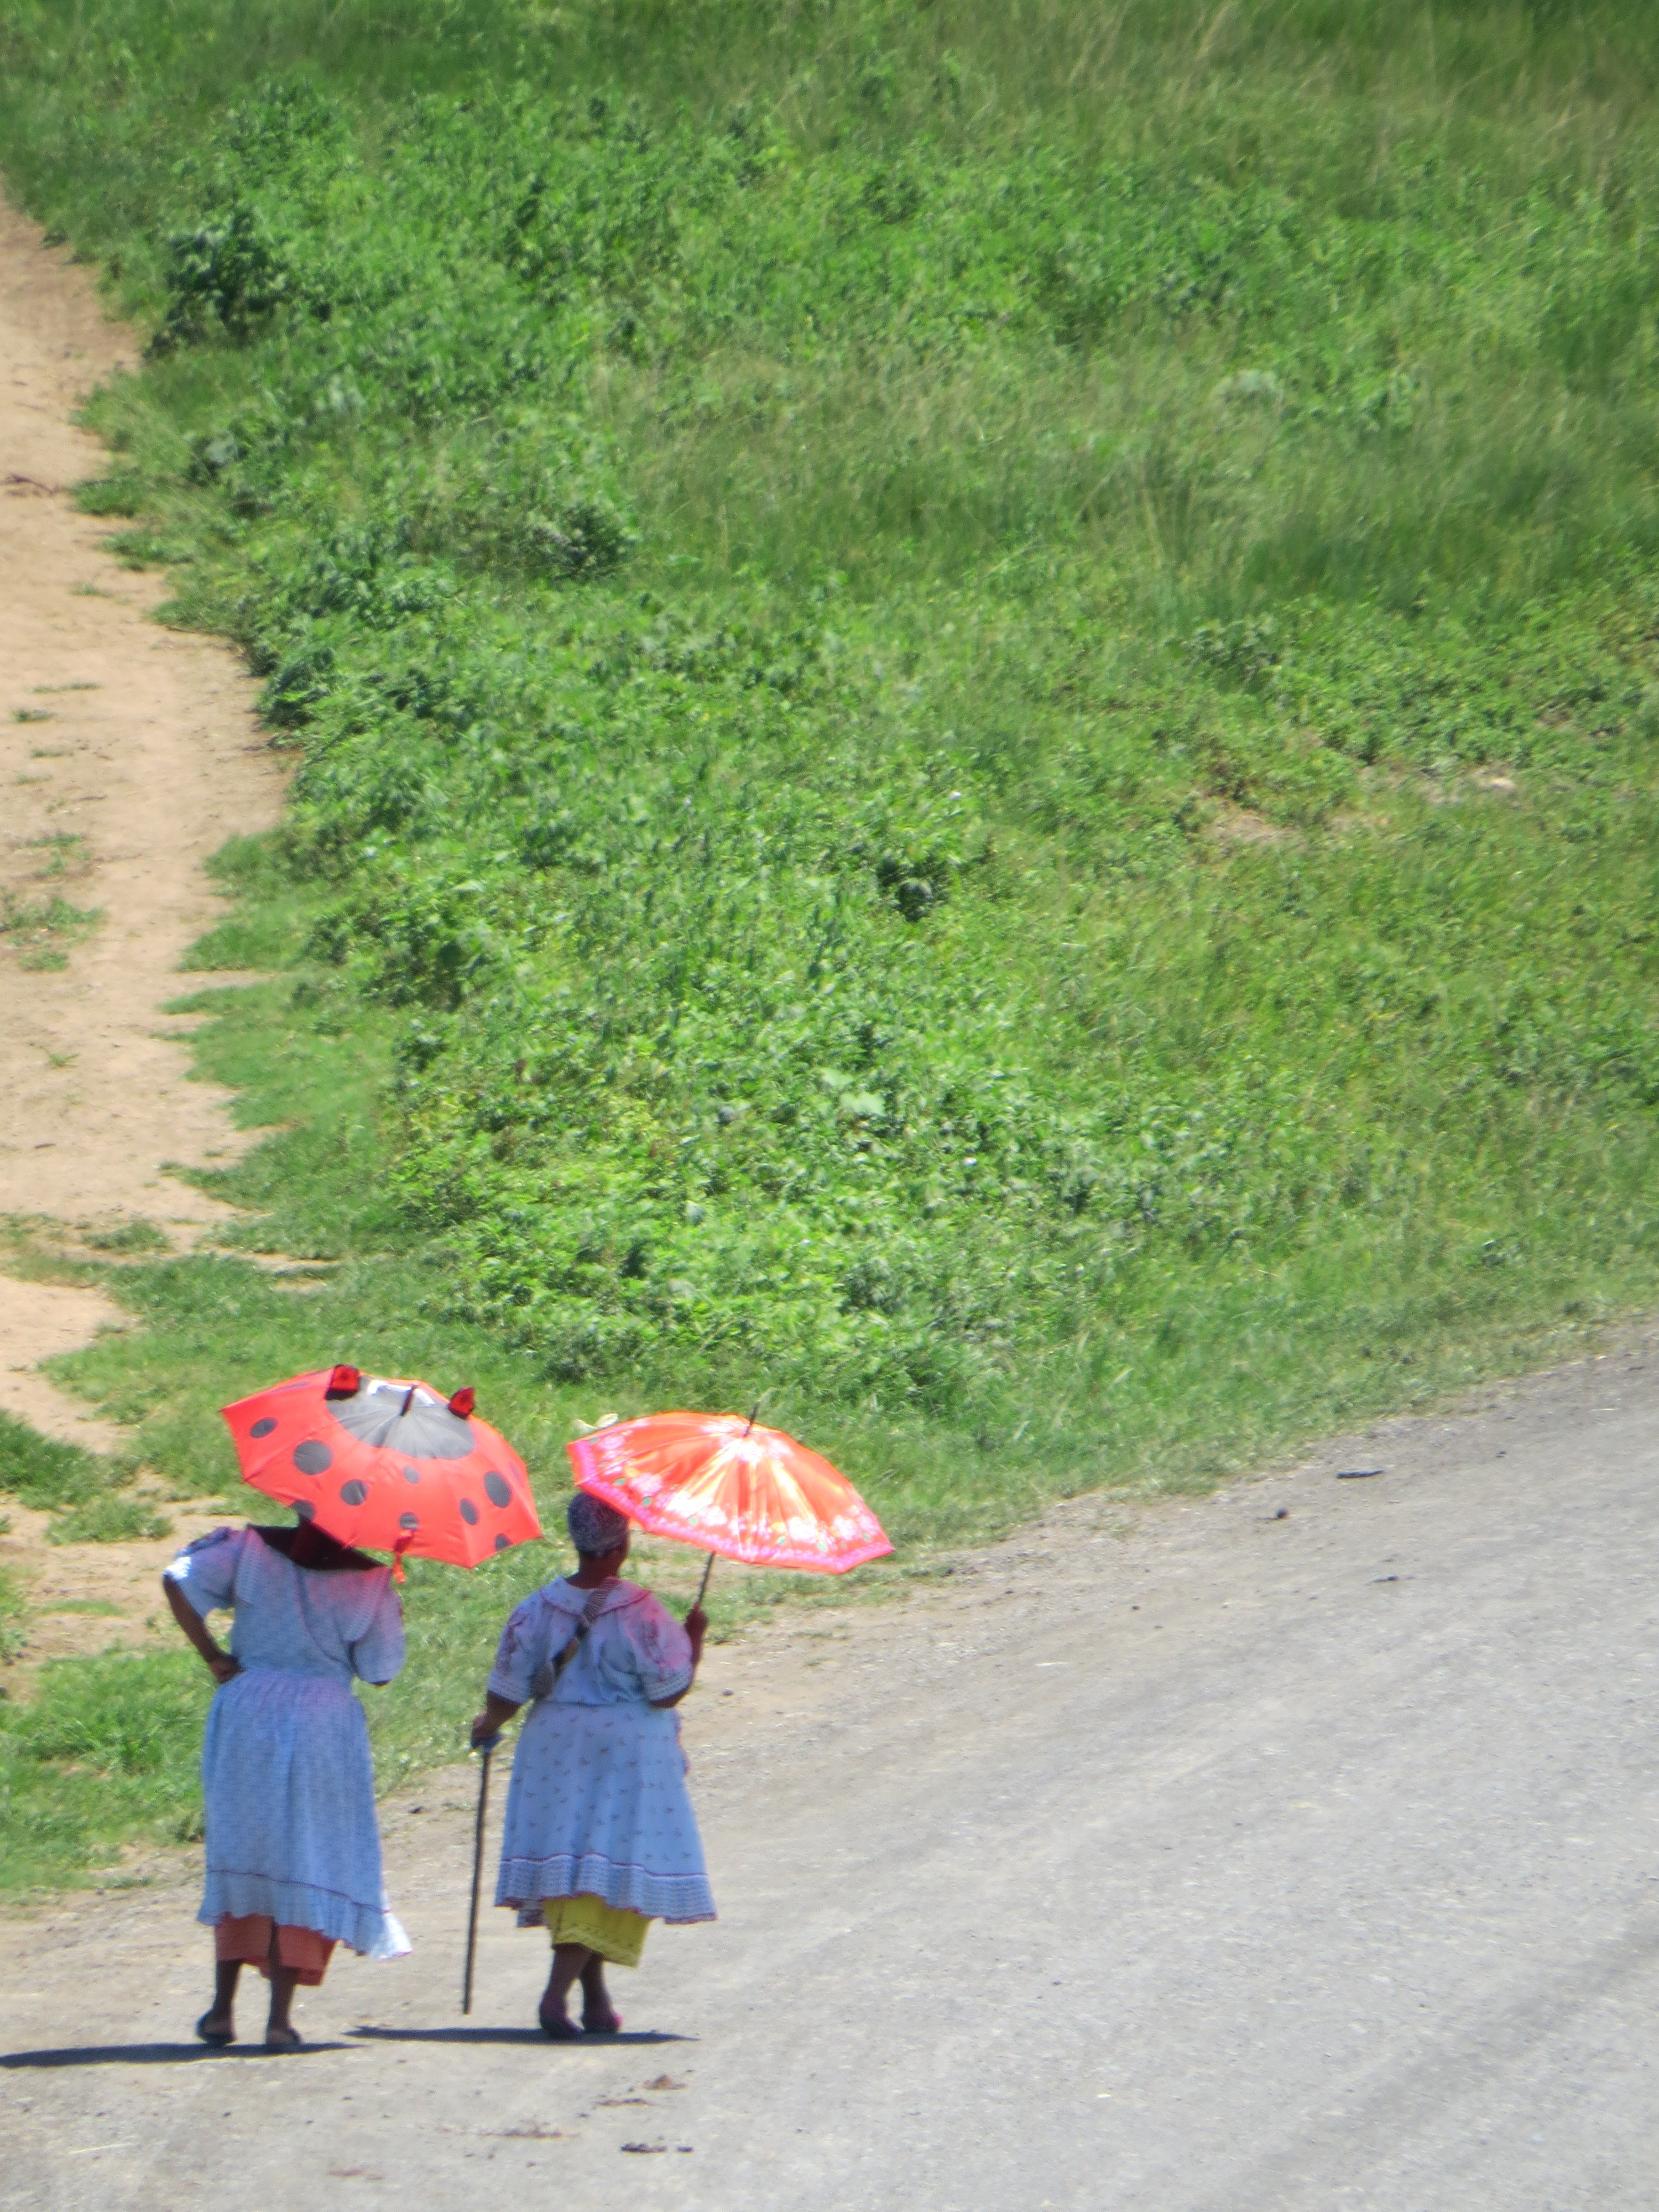 rural women walking with umbrellas against the sun